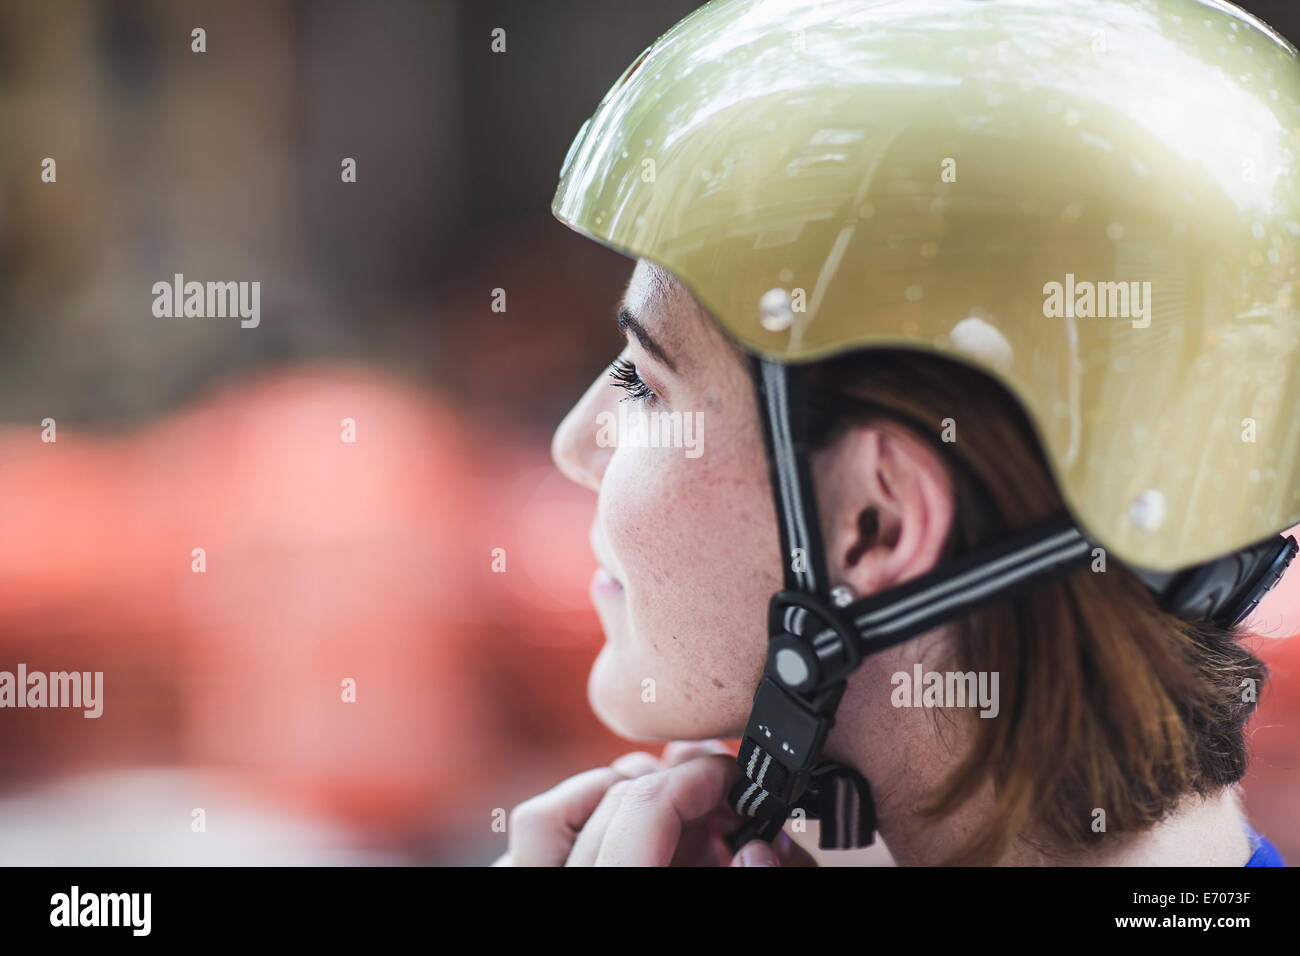 Close up of mid adult woman cyclist fastening cycle helmet - Stock Image